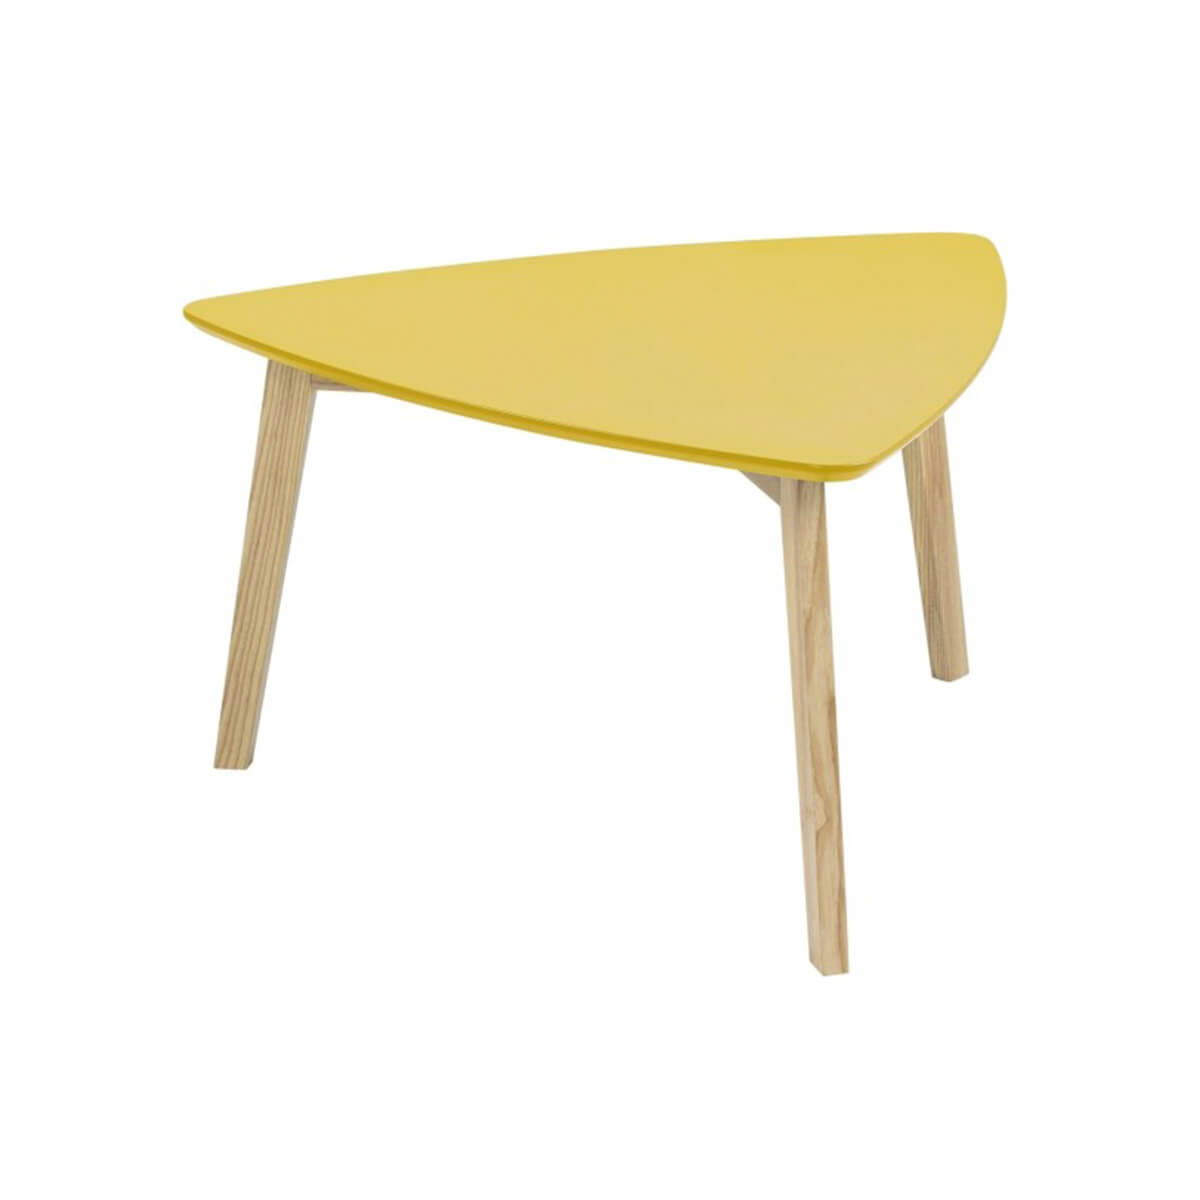 Vitis Yellow Triangular Coffee Table